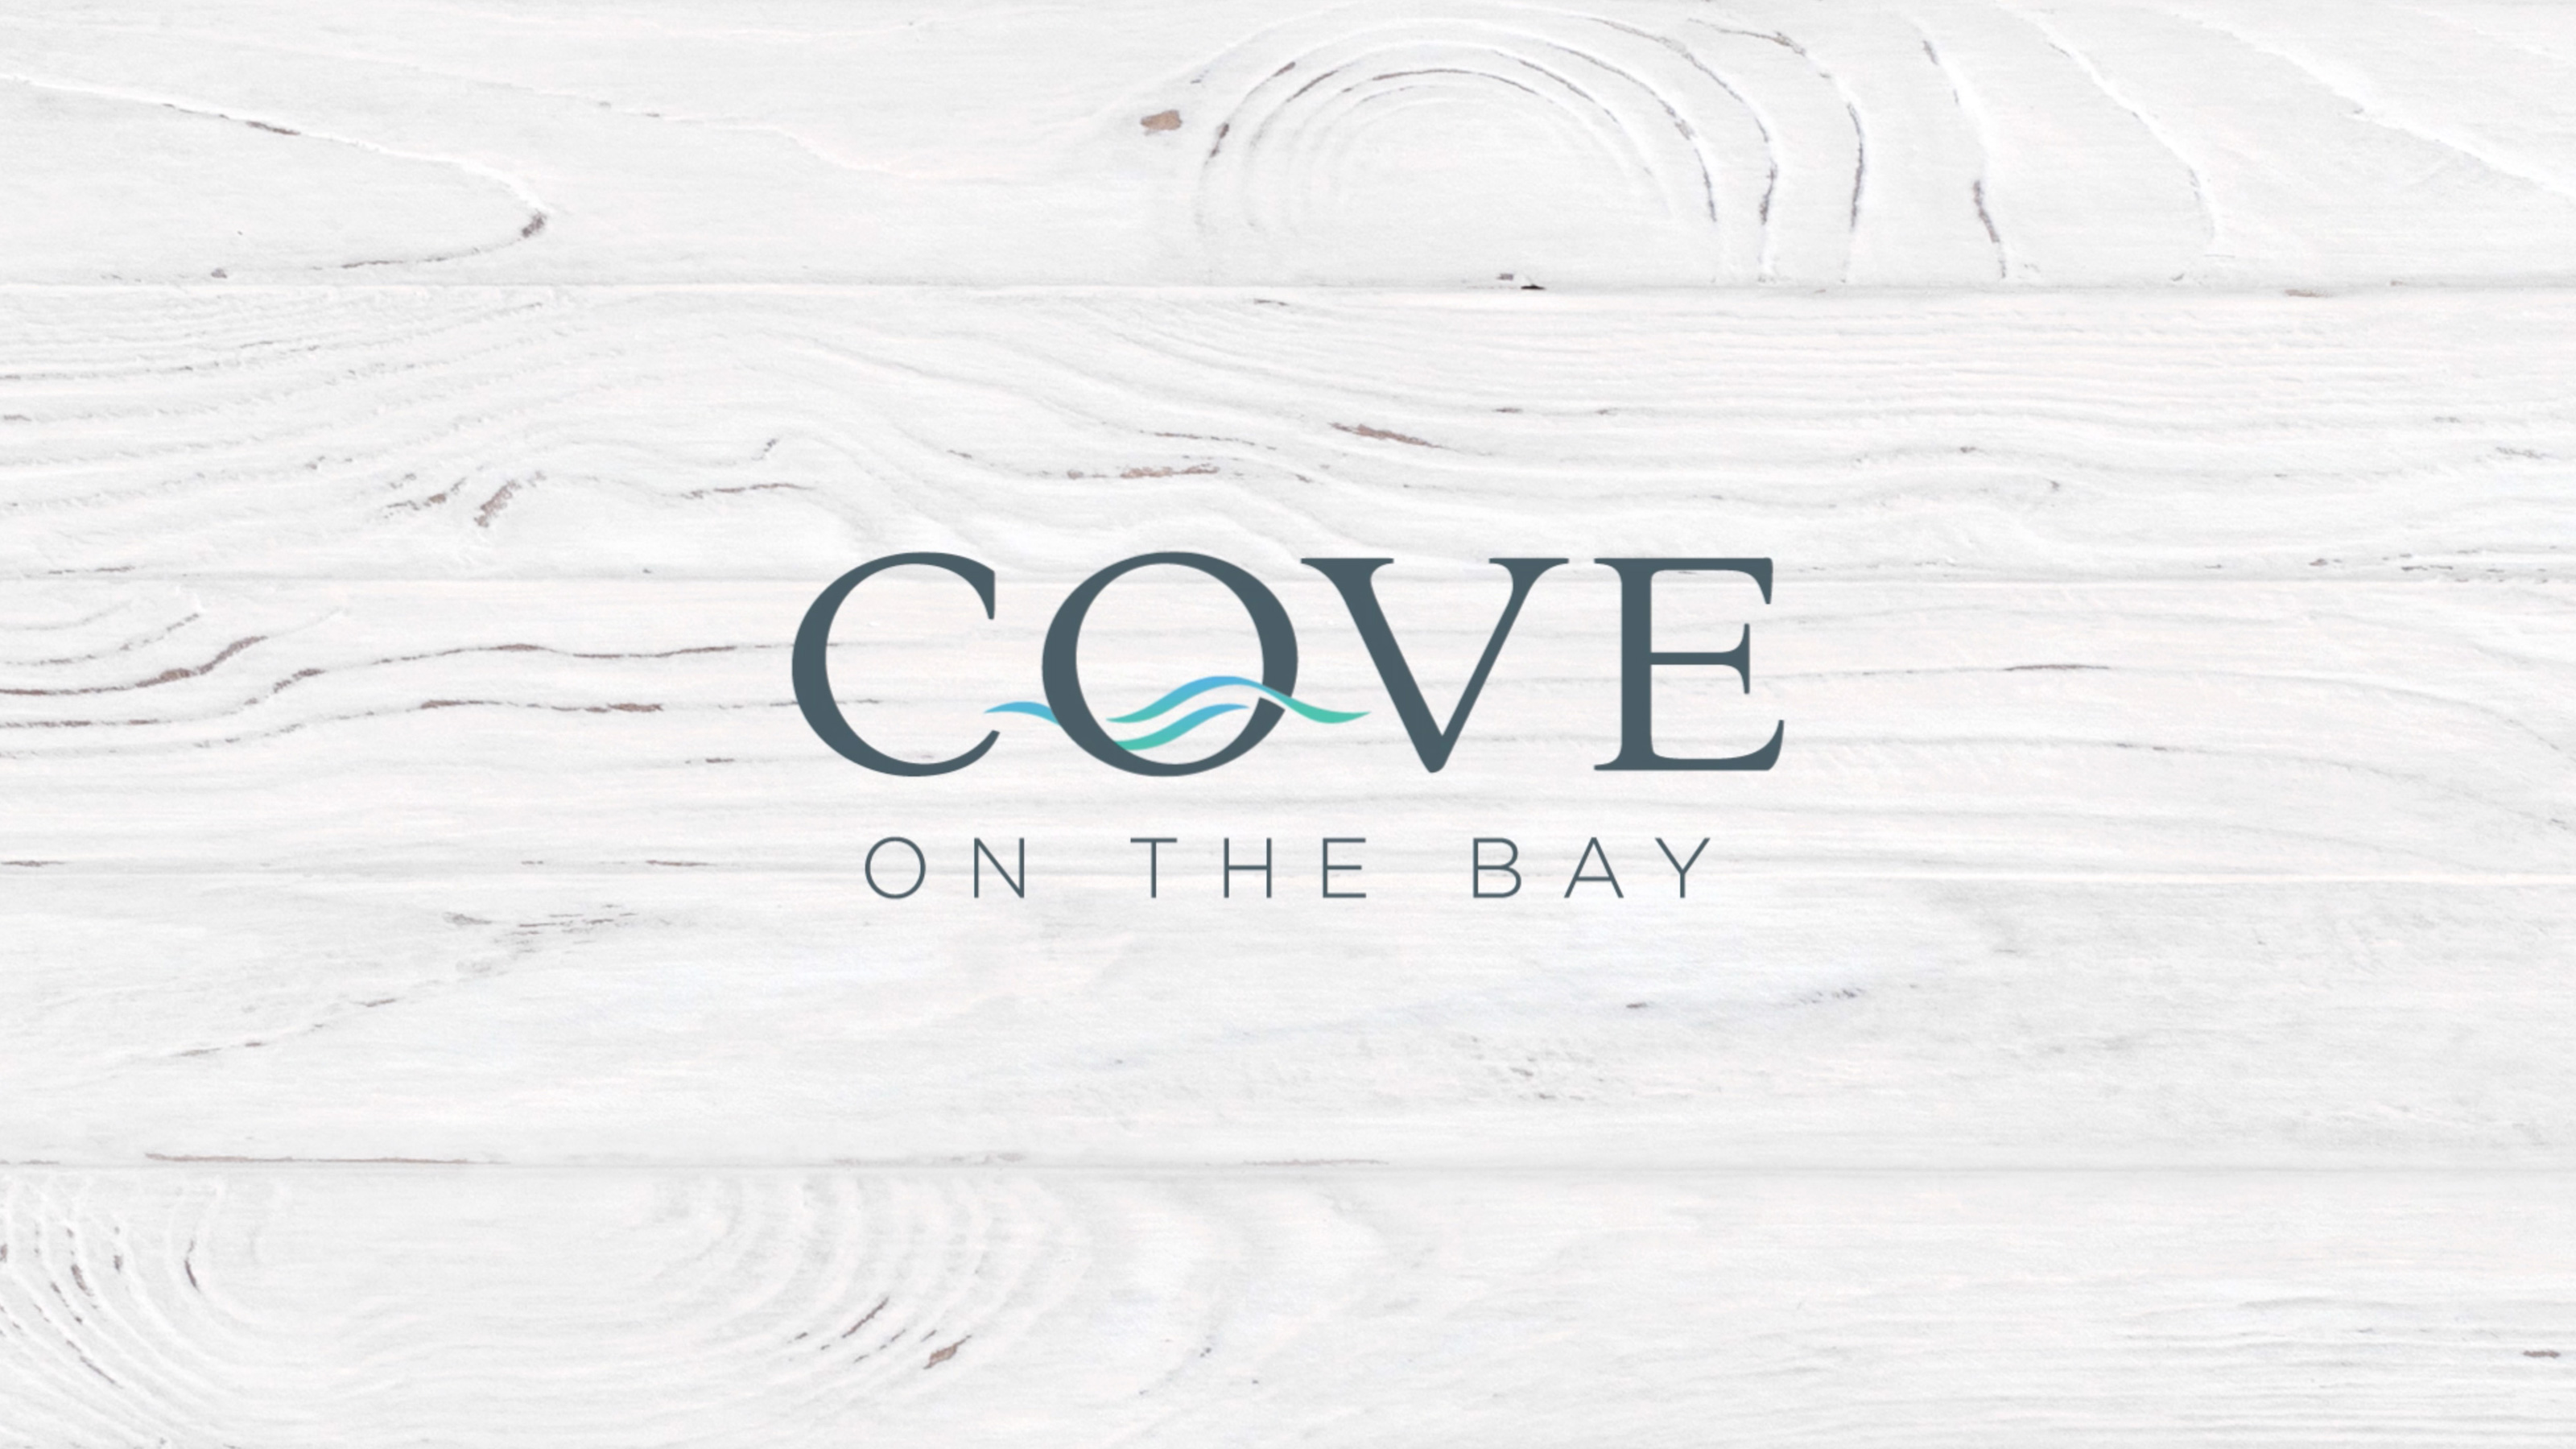 Cove on the Bay